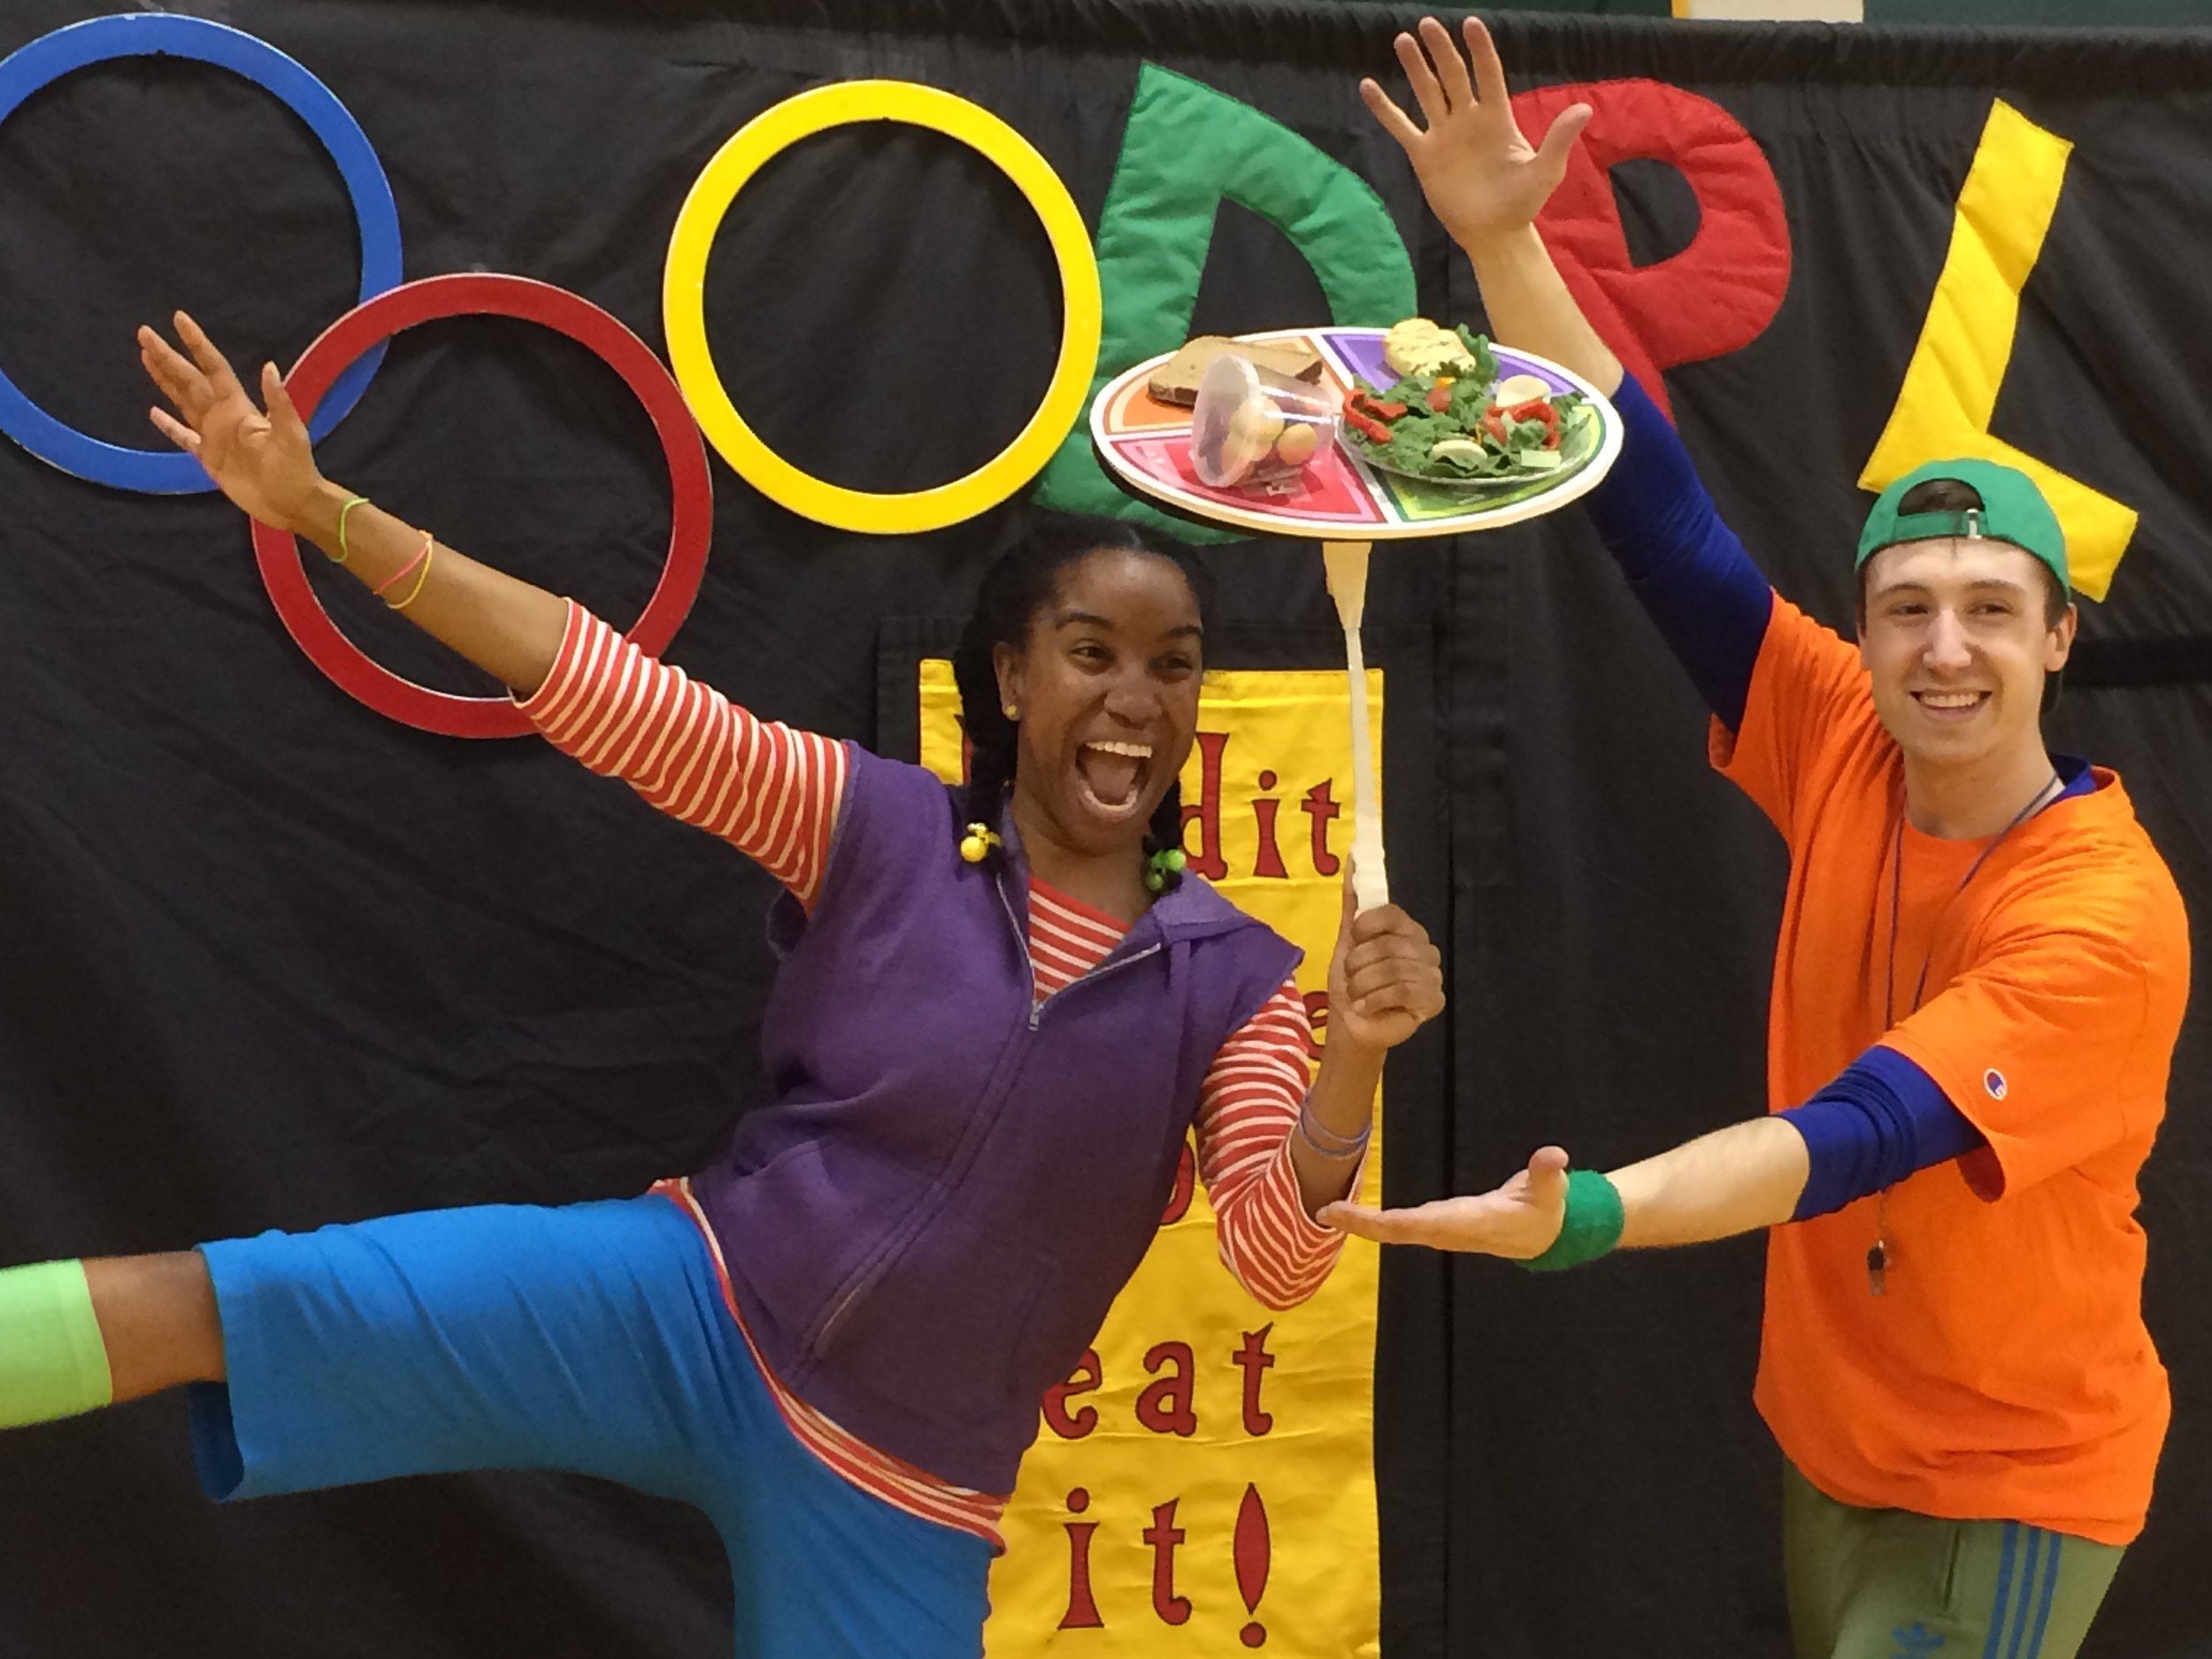 I'm on Tour - Juggling, eating, and dancing are few my favorite things and that's exactly what I get to do is this show as Janey! I'm training to become a master at juggling a healthy lifestyle in FoodPlay.Come Join Coach and Janey on this adventure across country. Check out where will be next HERE